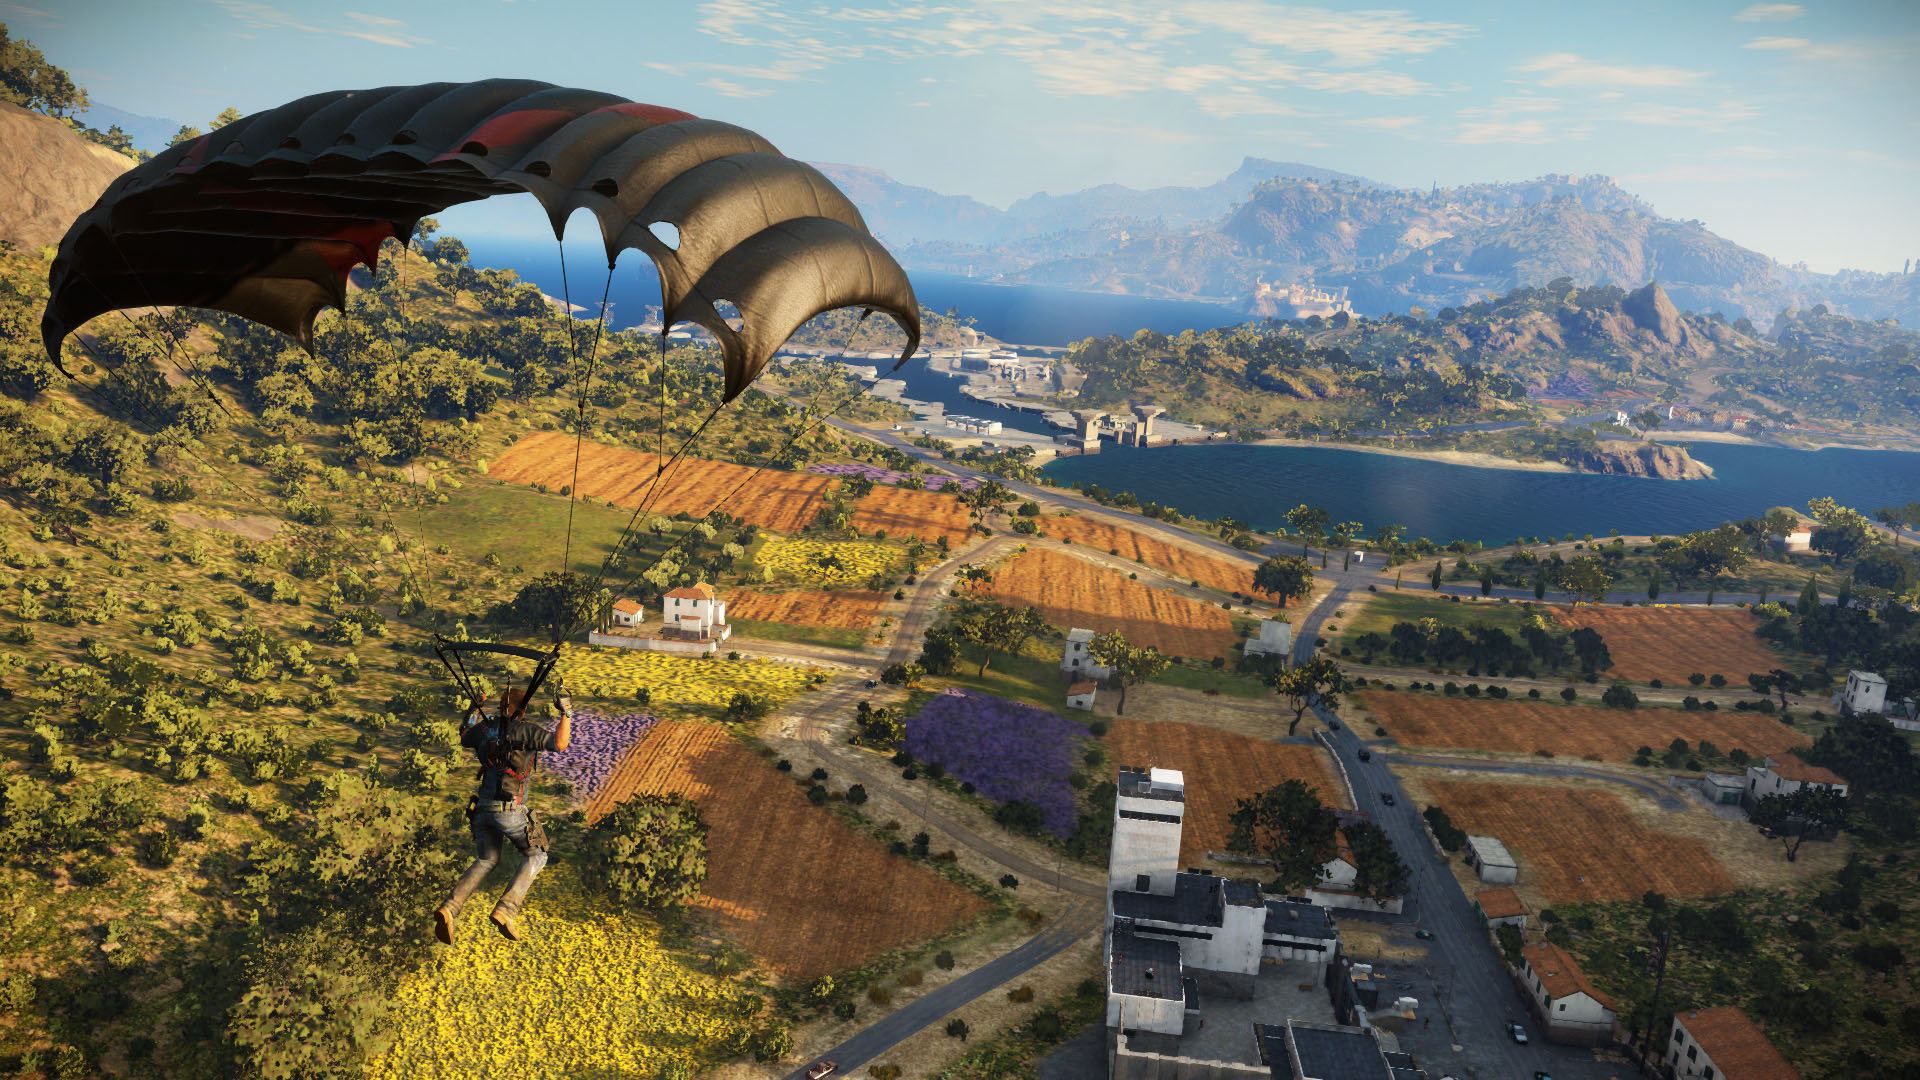 You chute into the action in Just Cause 3.